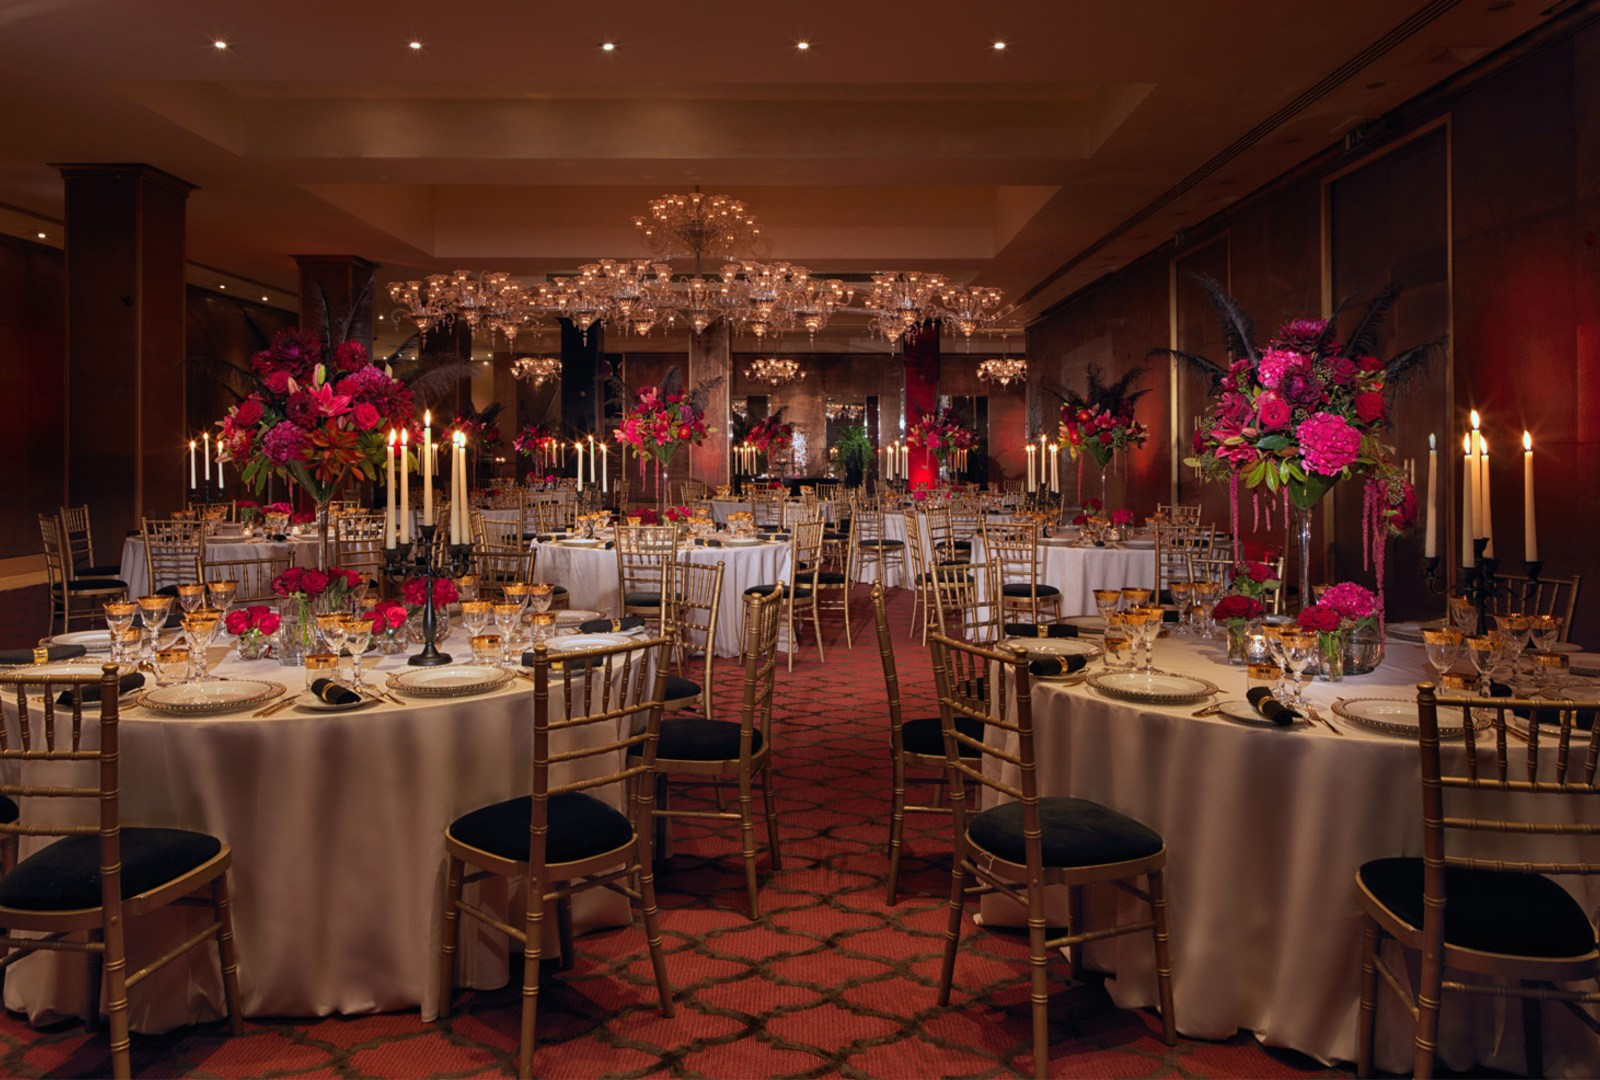 CRYSTAL_PRIVATE_DINING_1600px_wide.jpg